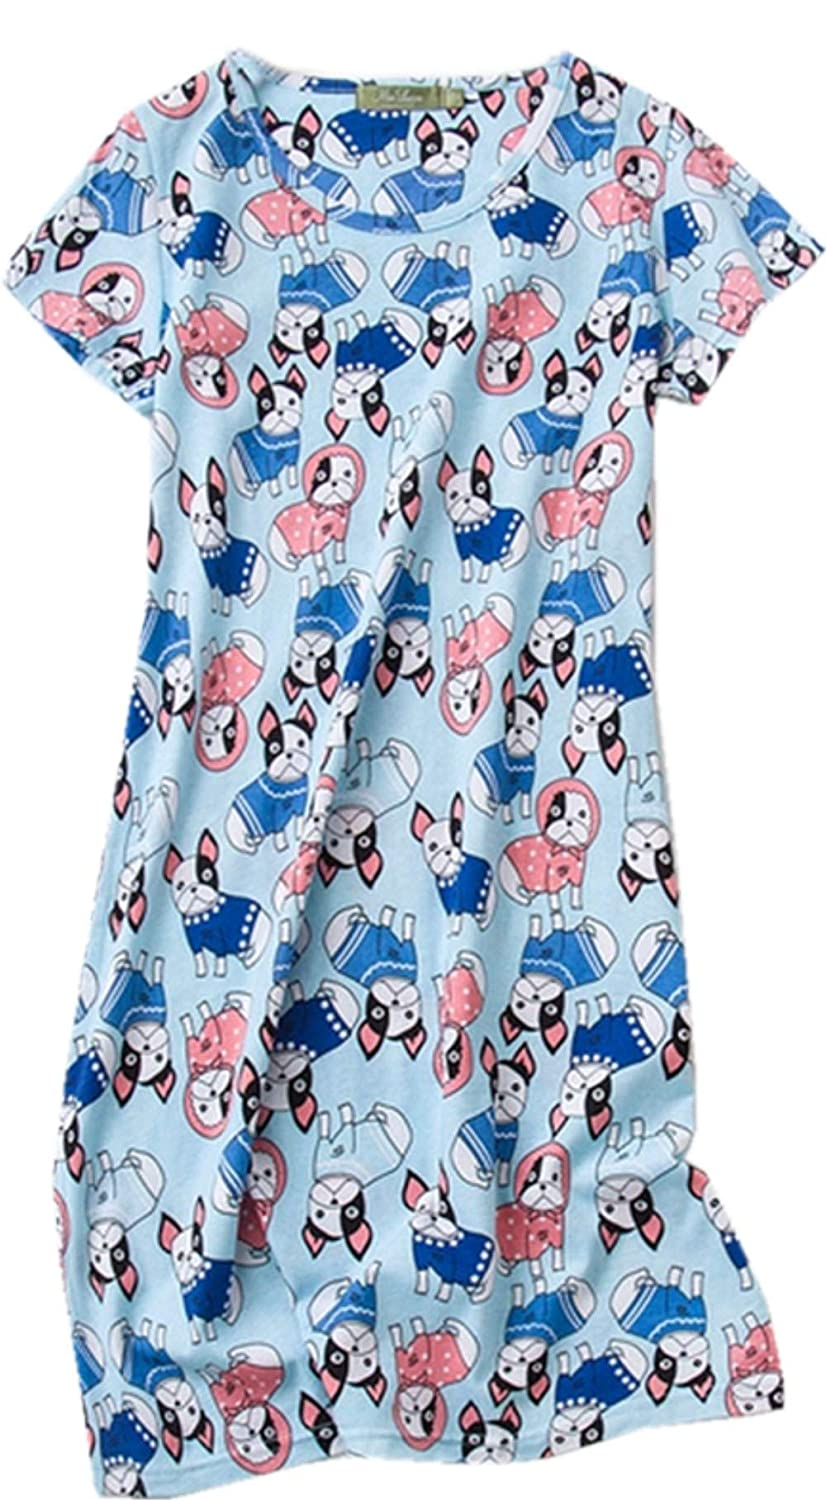 ✿Nightshirt Design  This cotton nightshirt for women accommodates almost  body shapes. the nightshirt is designed to midway between the knees 9bf923f1f